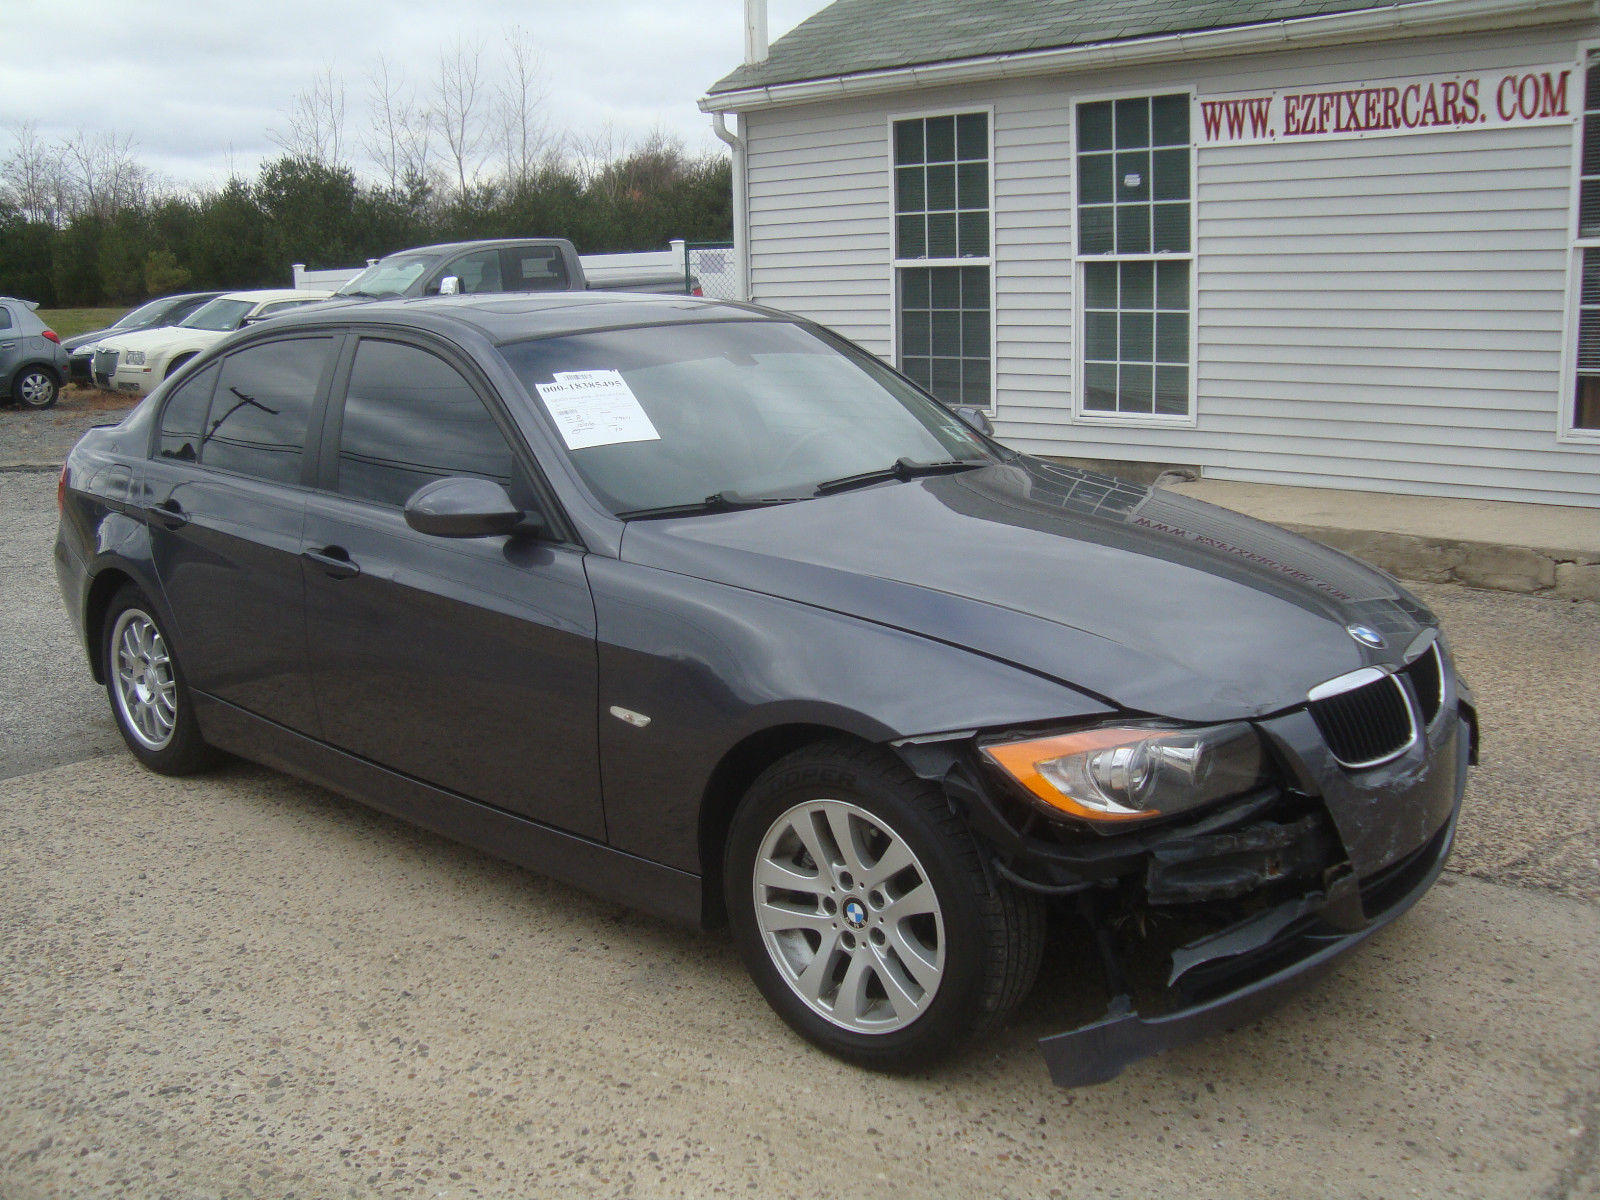 Light Damage 2007 Bmw 3 Series 328 Rebuildable Repairable